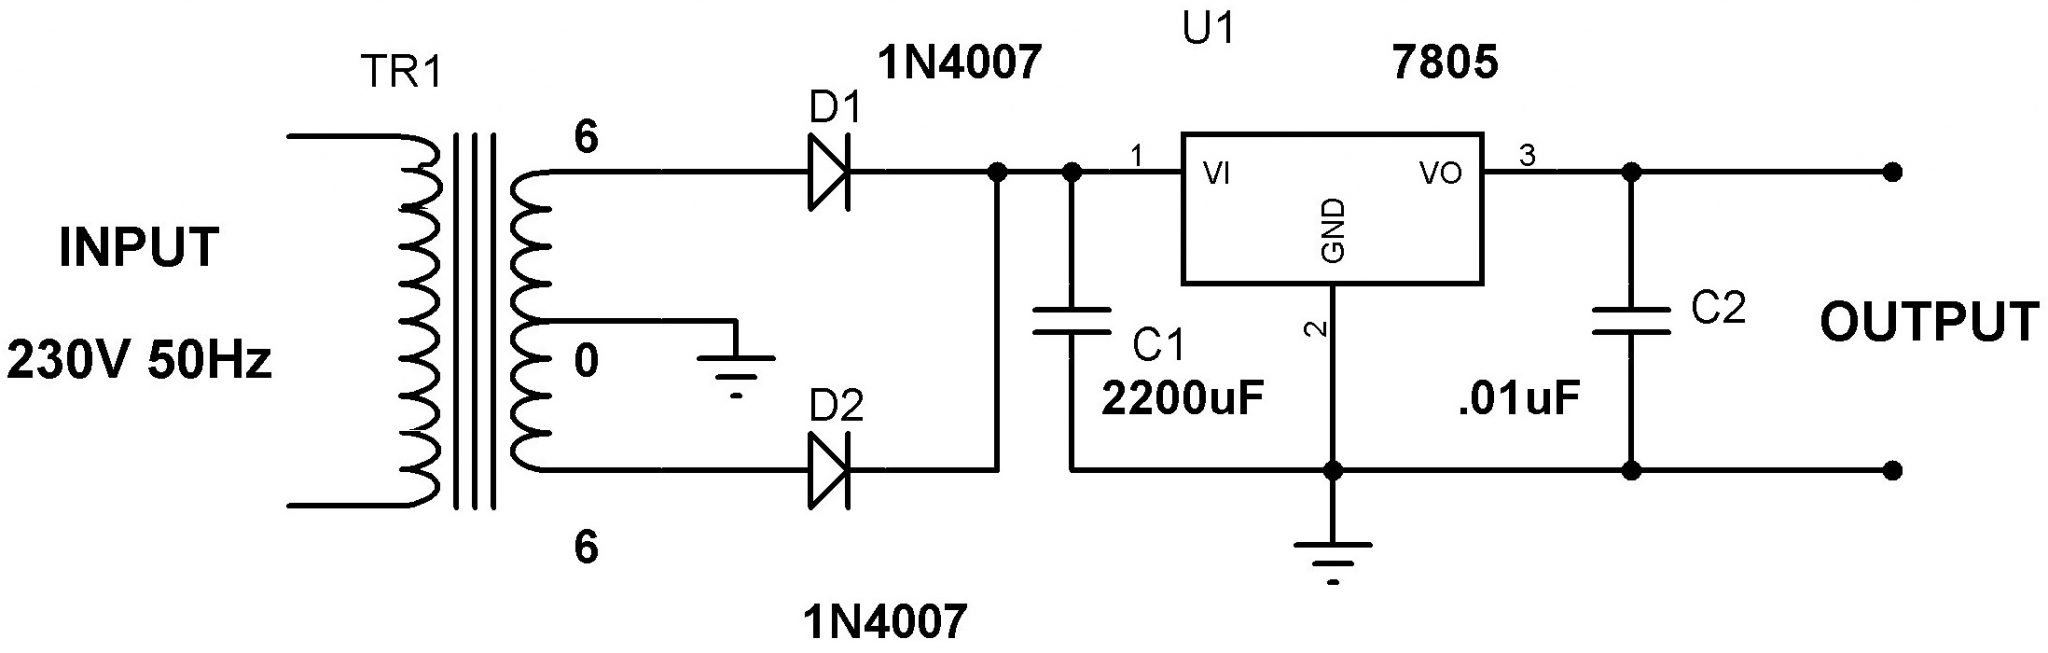 v power supply using  voltage regulator with design, wiring diagram